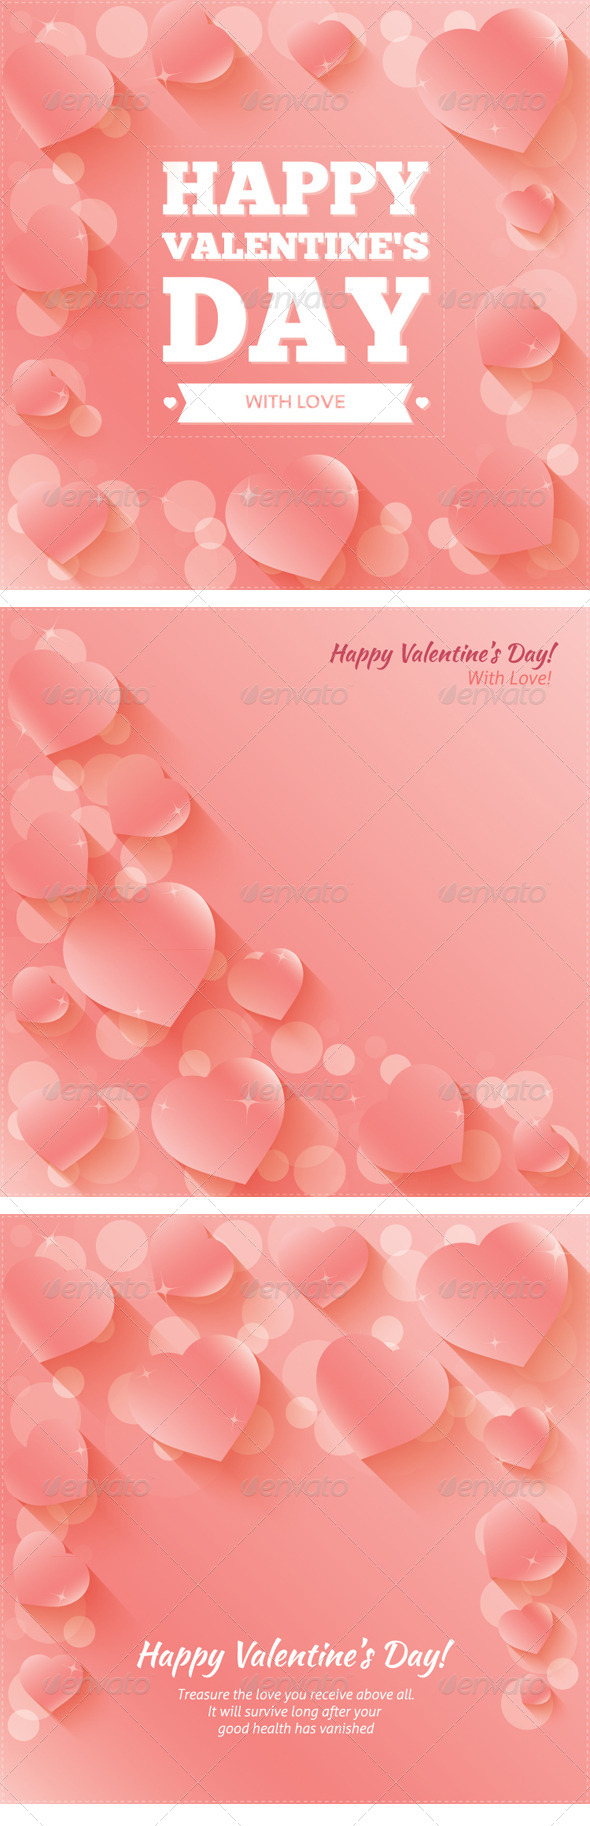 GraphicRiver Valentine s Day Cards Backgrounds with Hearts 6651781